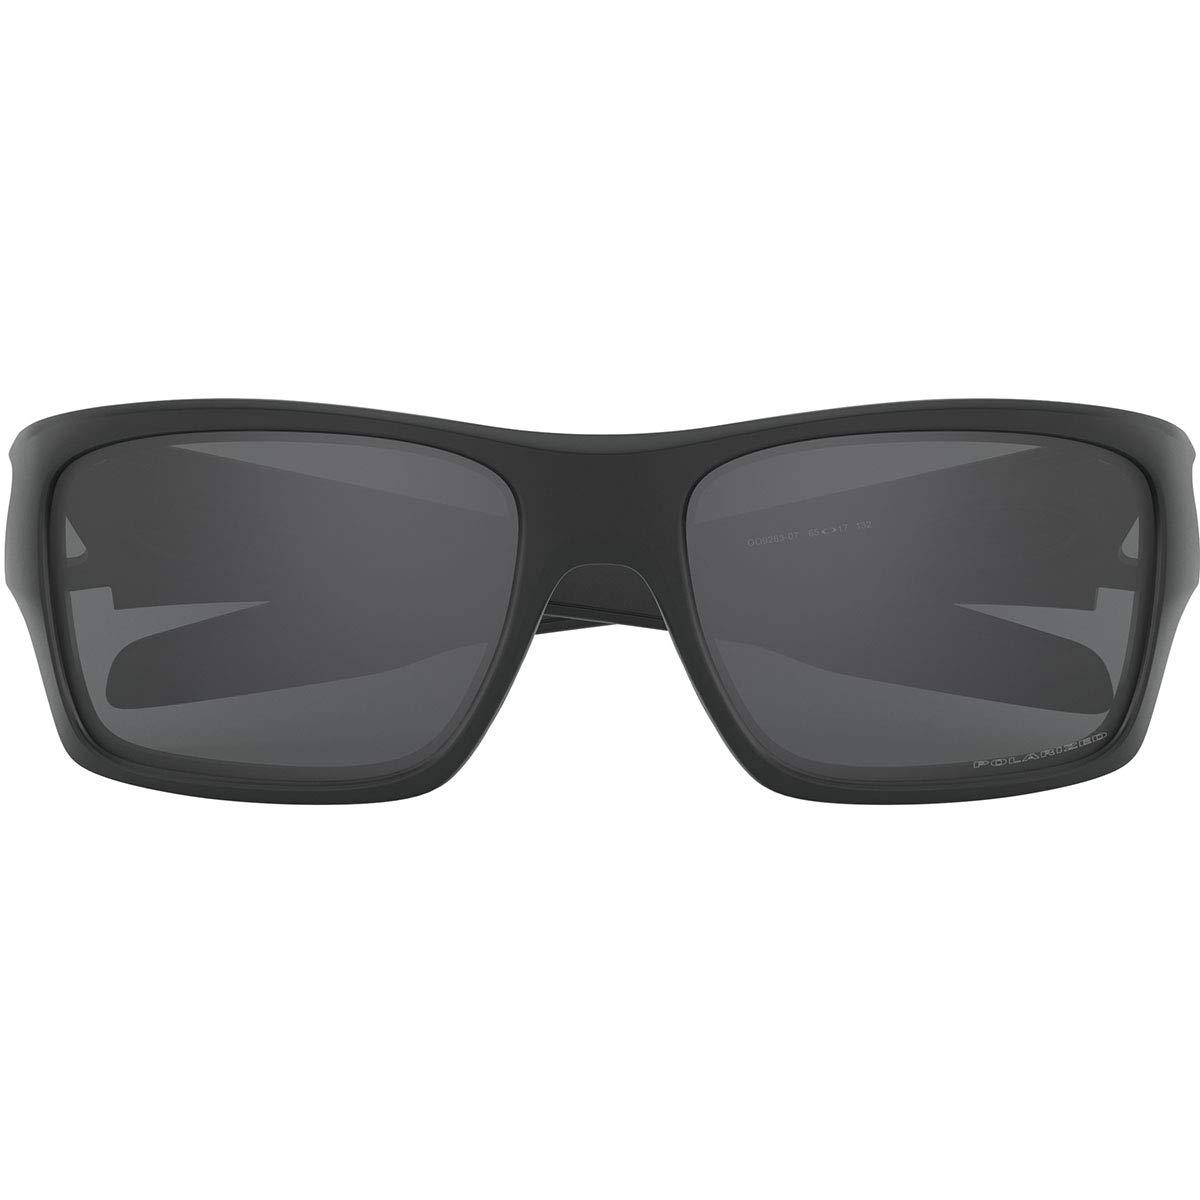 17361da80fc2 Amazon.com: Oakley Men's Turbine Rectangular Sunglasses, Black Ink, 65 mm:  Clothing